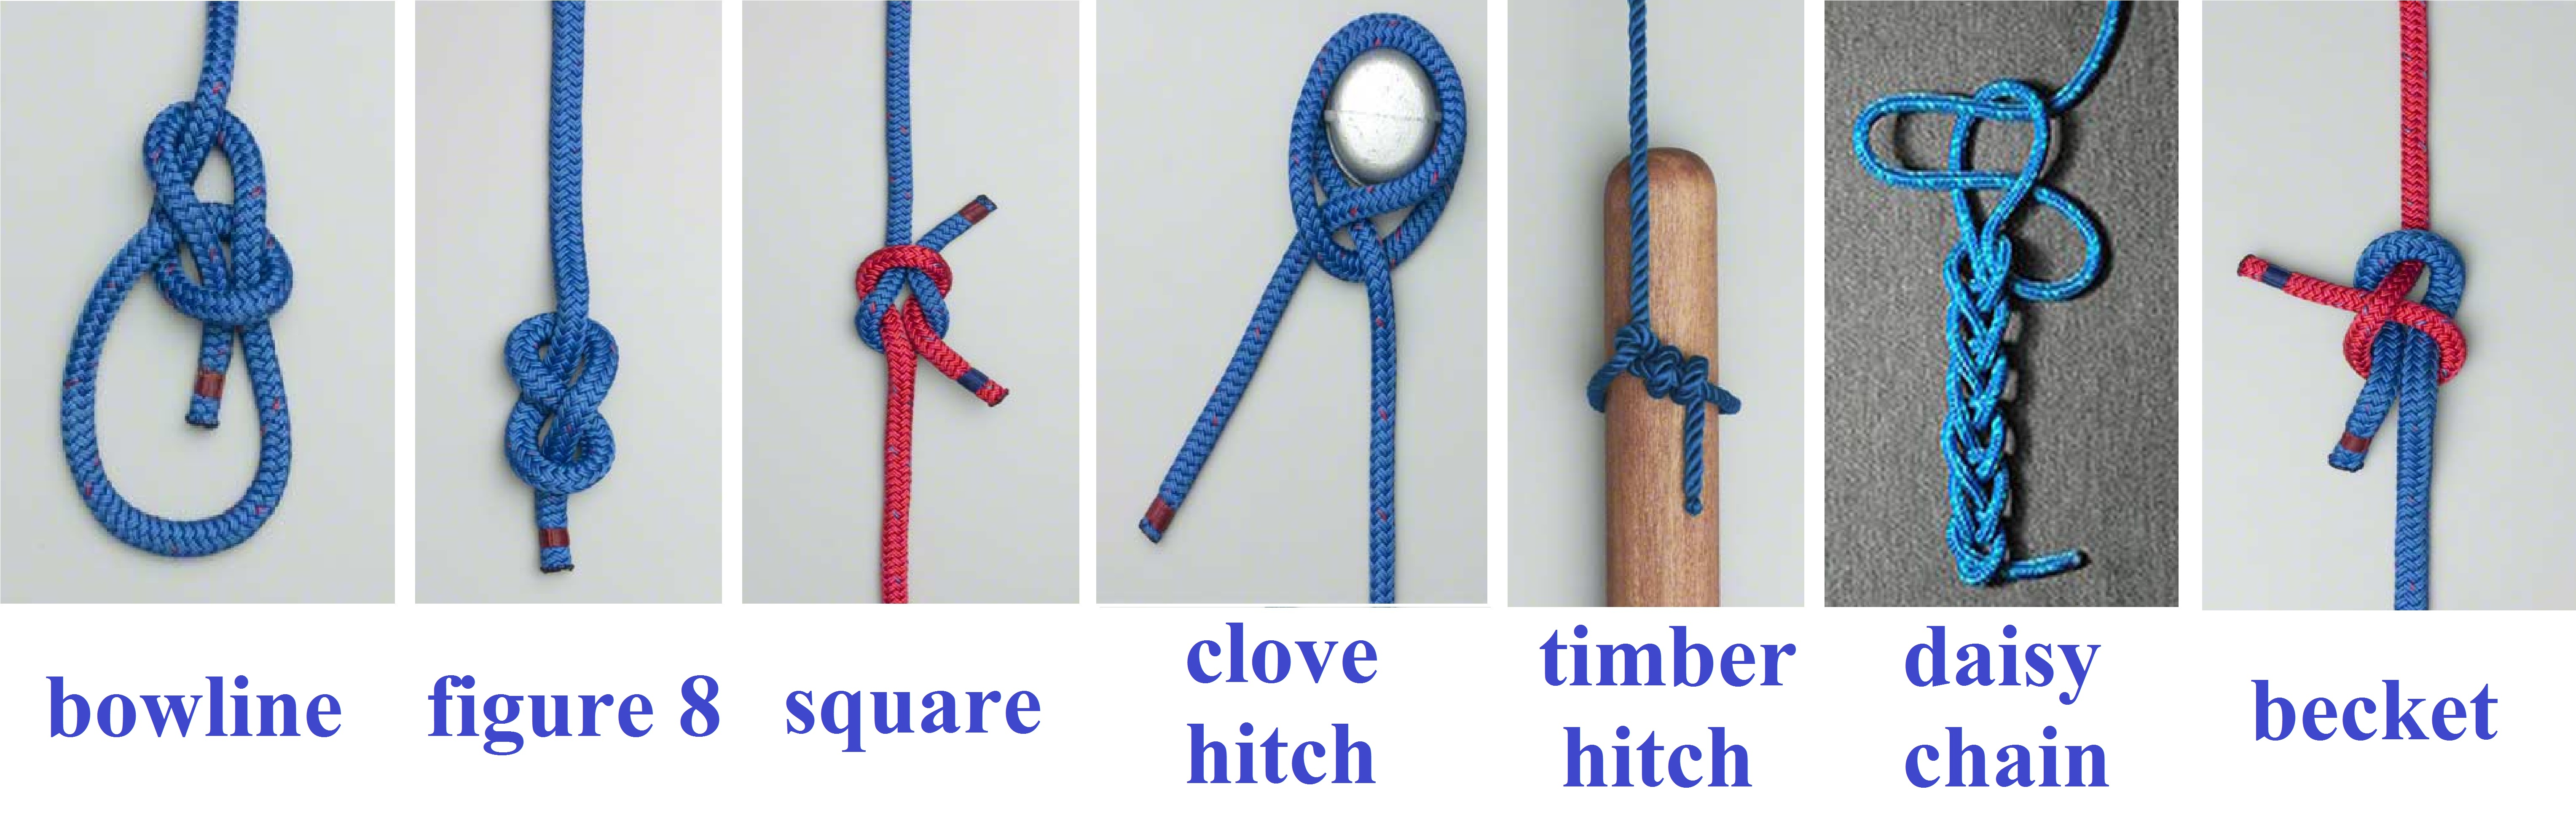 Some Of The Knots I Learned To Tie On Board